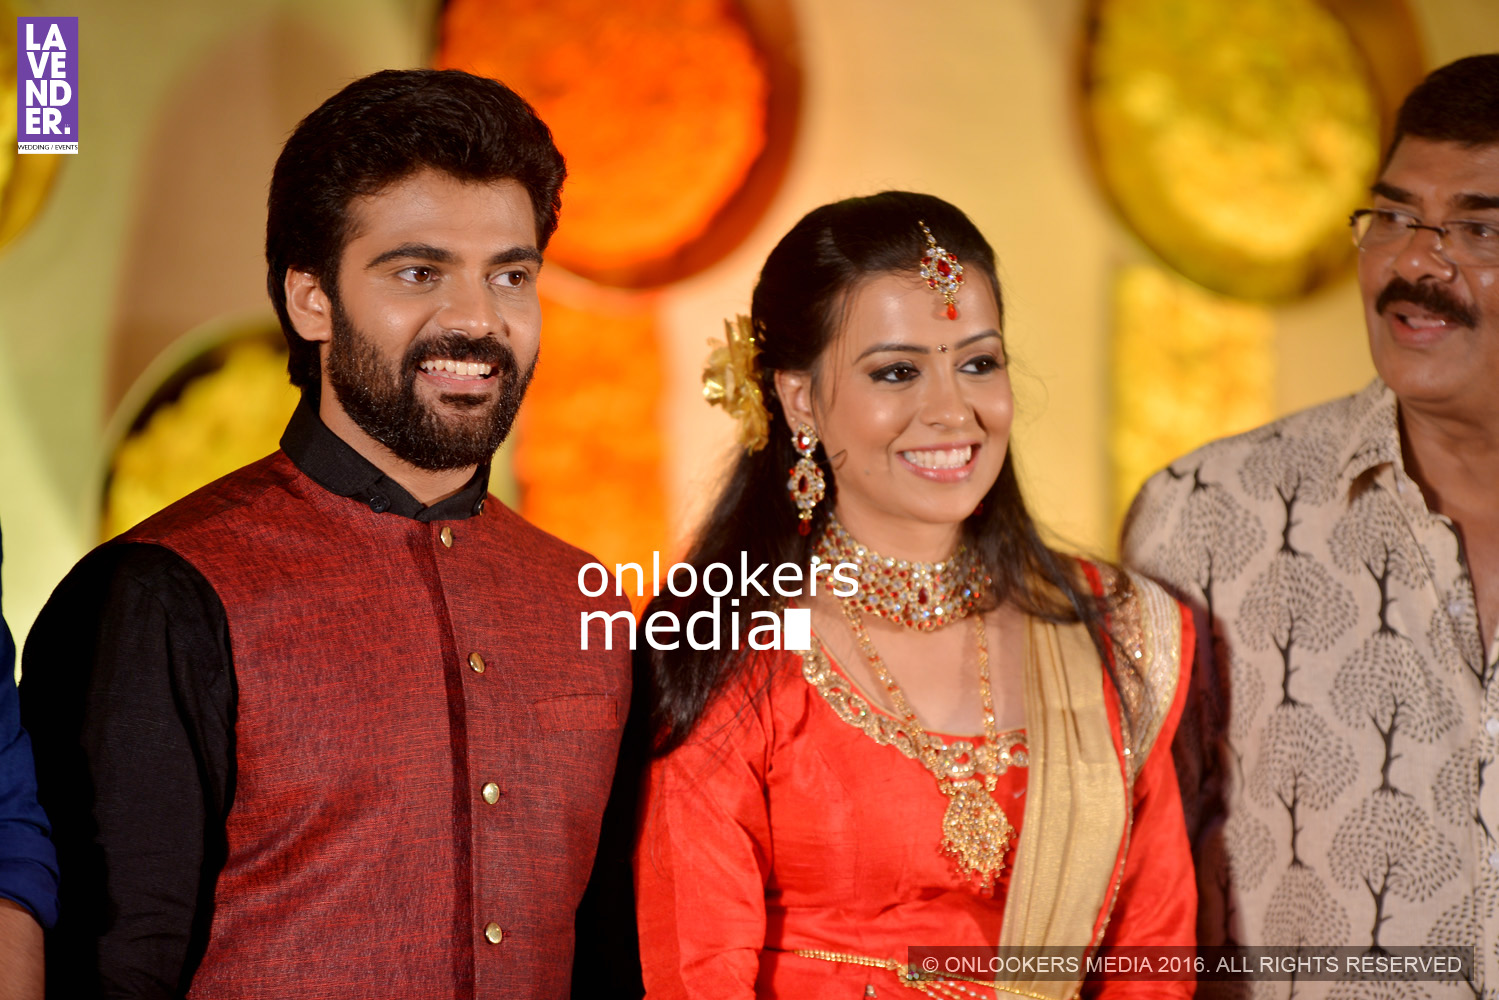 actor Vijayaraghavan, Vijayaraghavan son wedding reception, lavender wedding and events, devadevan wedding photos, mammootty new look, mammootty in thoppil joppan, kavya madhavan in saree, malayalam actress photos